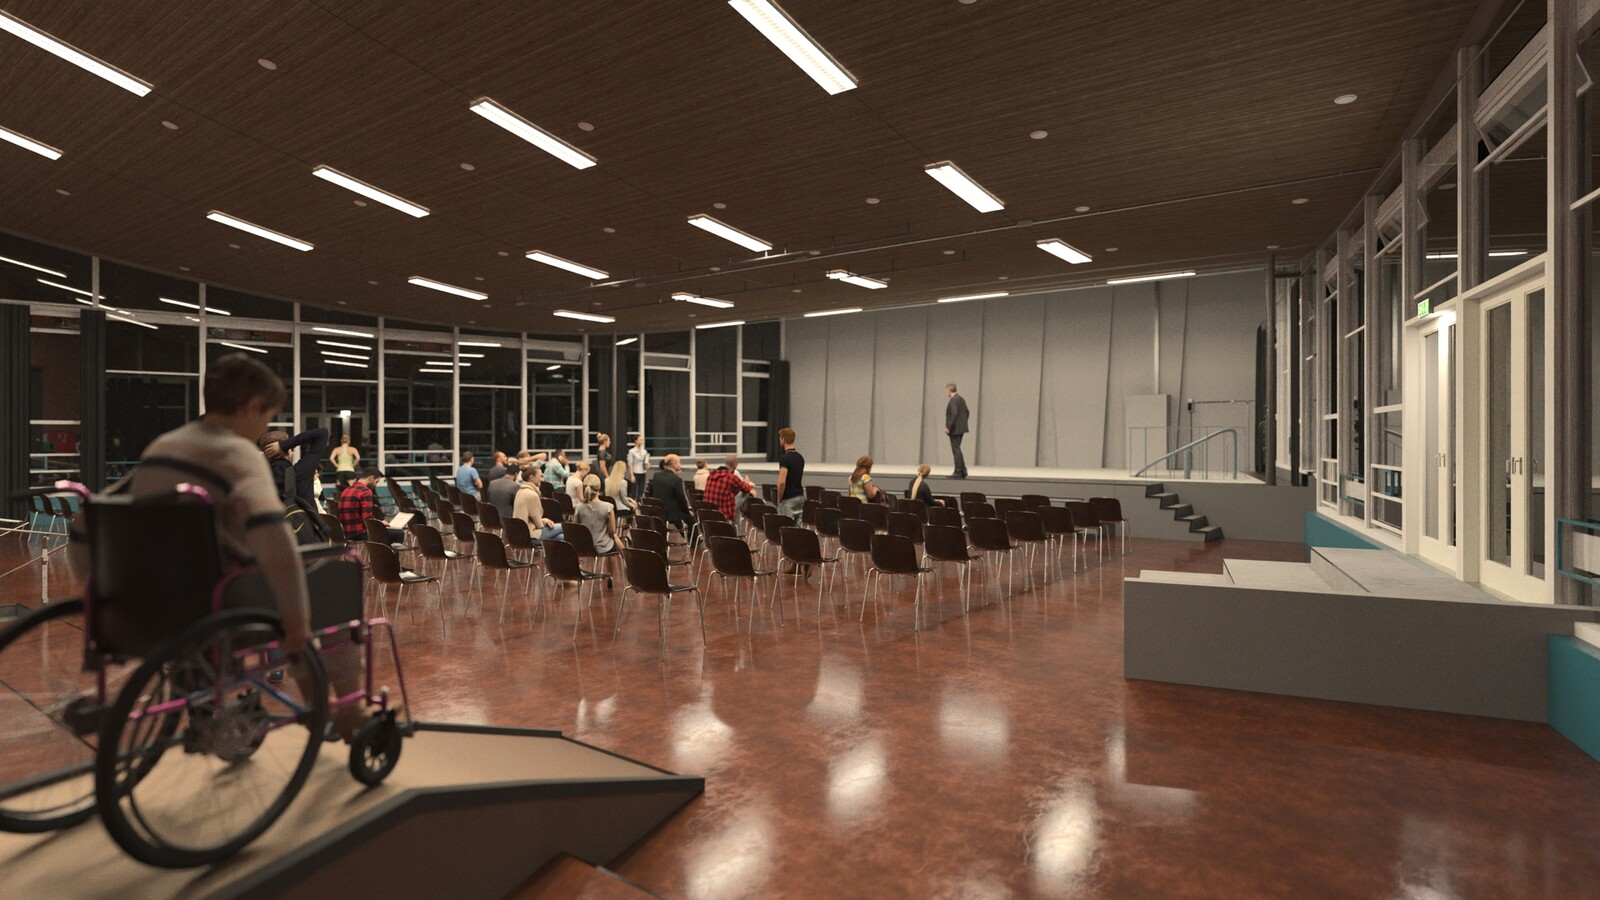 SketchUp 2021 + Thea Render V3 Broedplaats LELY (The Lely Incubator) Auditorium Amsterdam Showroom Final-Scene 6C 20m15s HD1080 1536sp